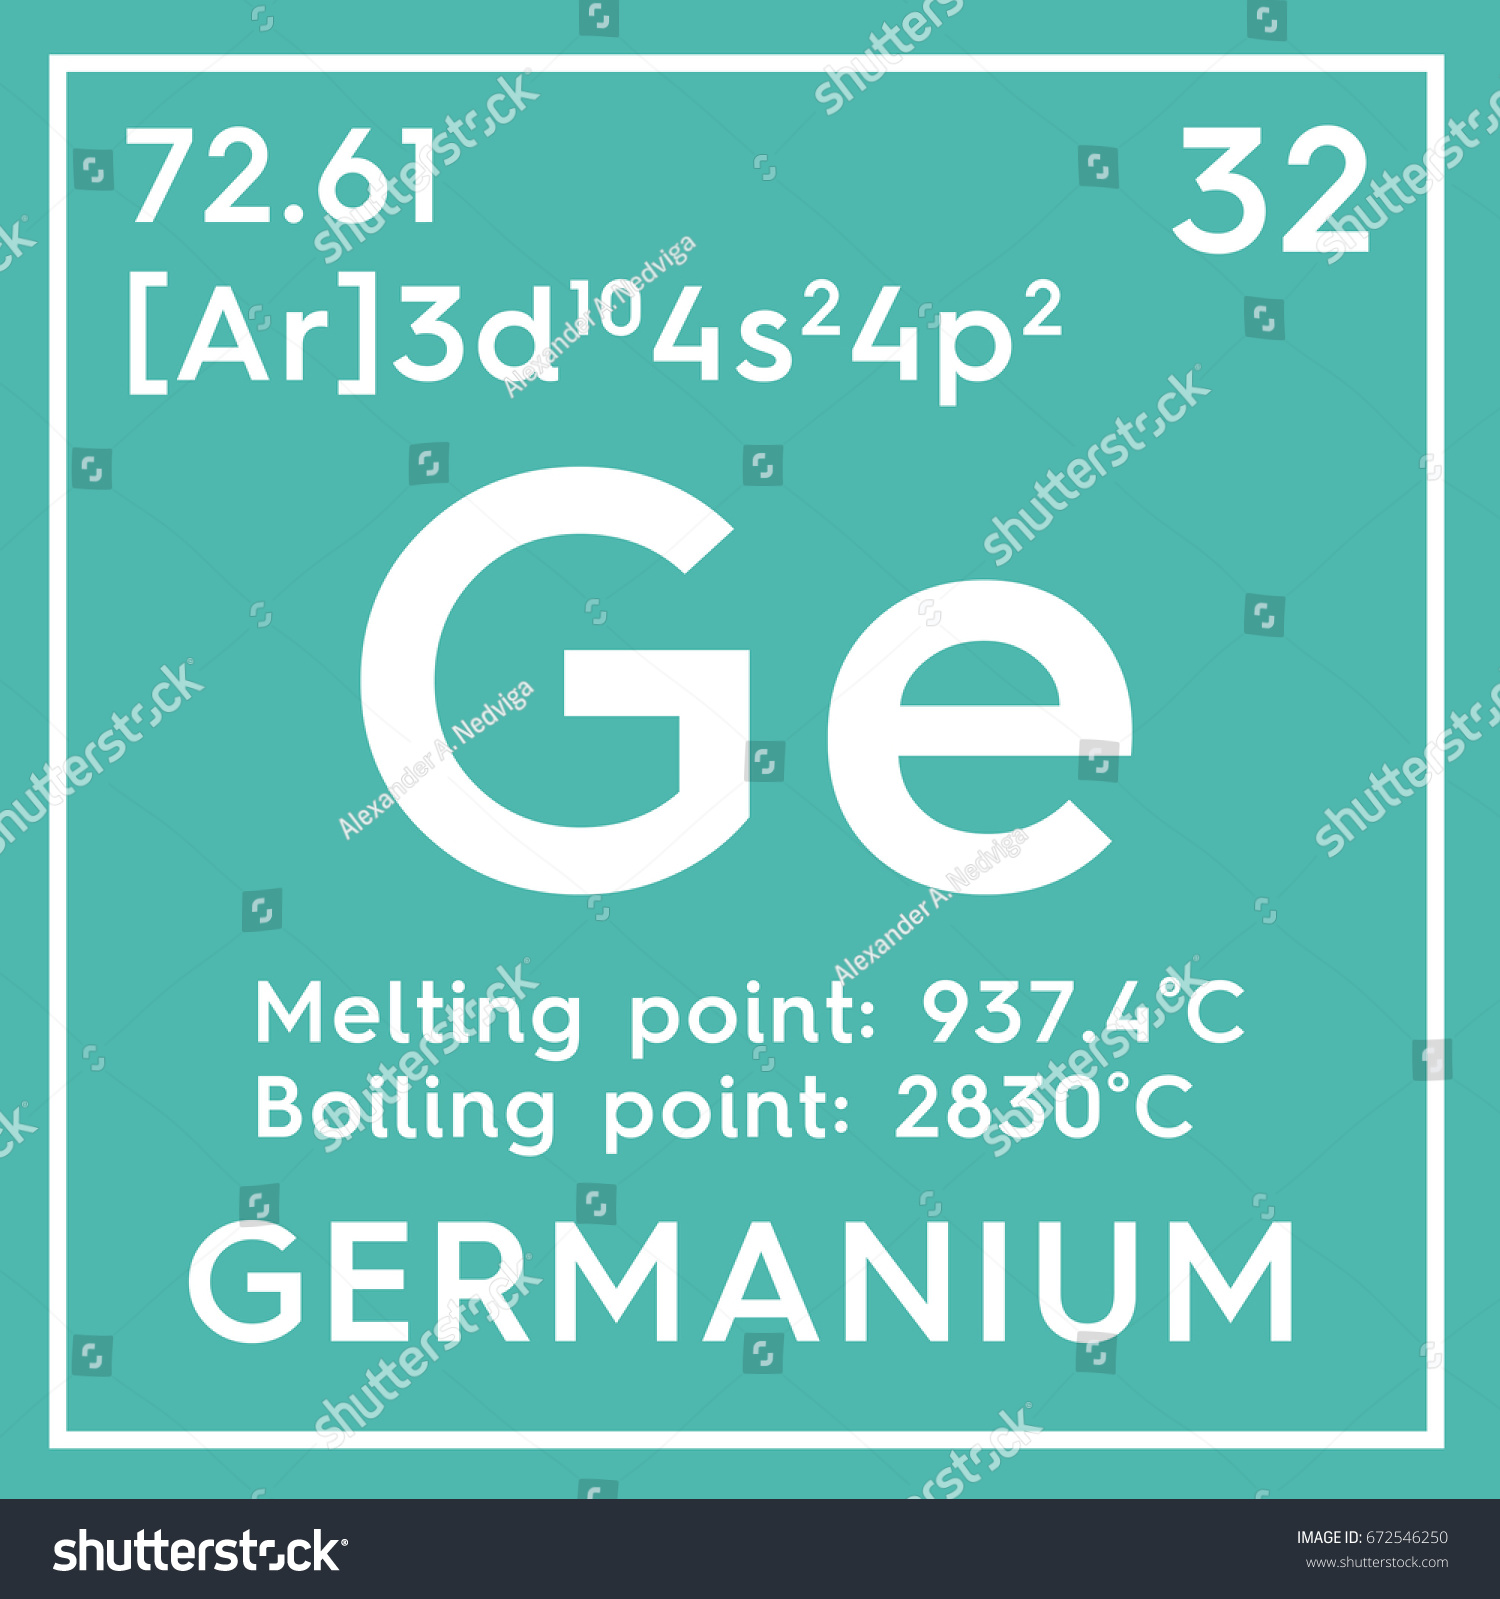 Germanium in periodic table choice image periodic table images germanium metalloids chemical element mendeleevs periodic stock germanium metalloids chemical element of mendeleevs periodic table germanium gamestrikefo Image collections